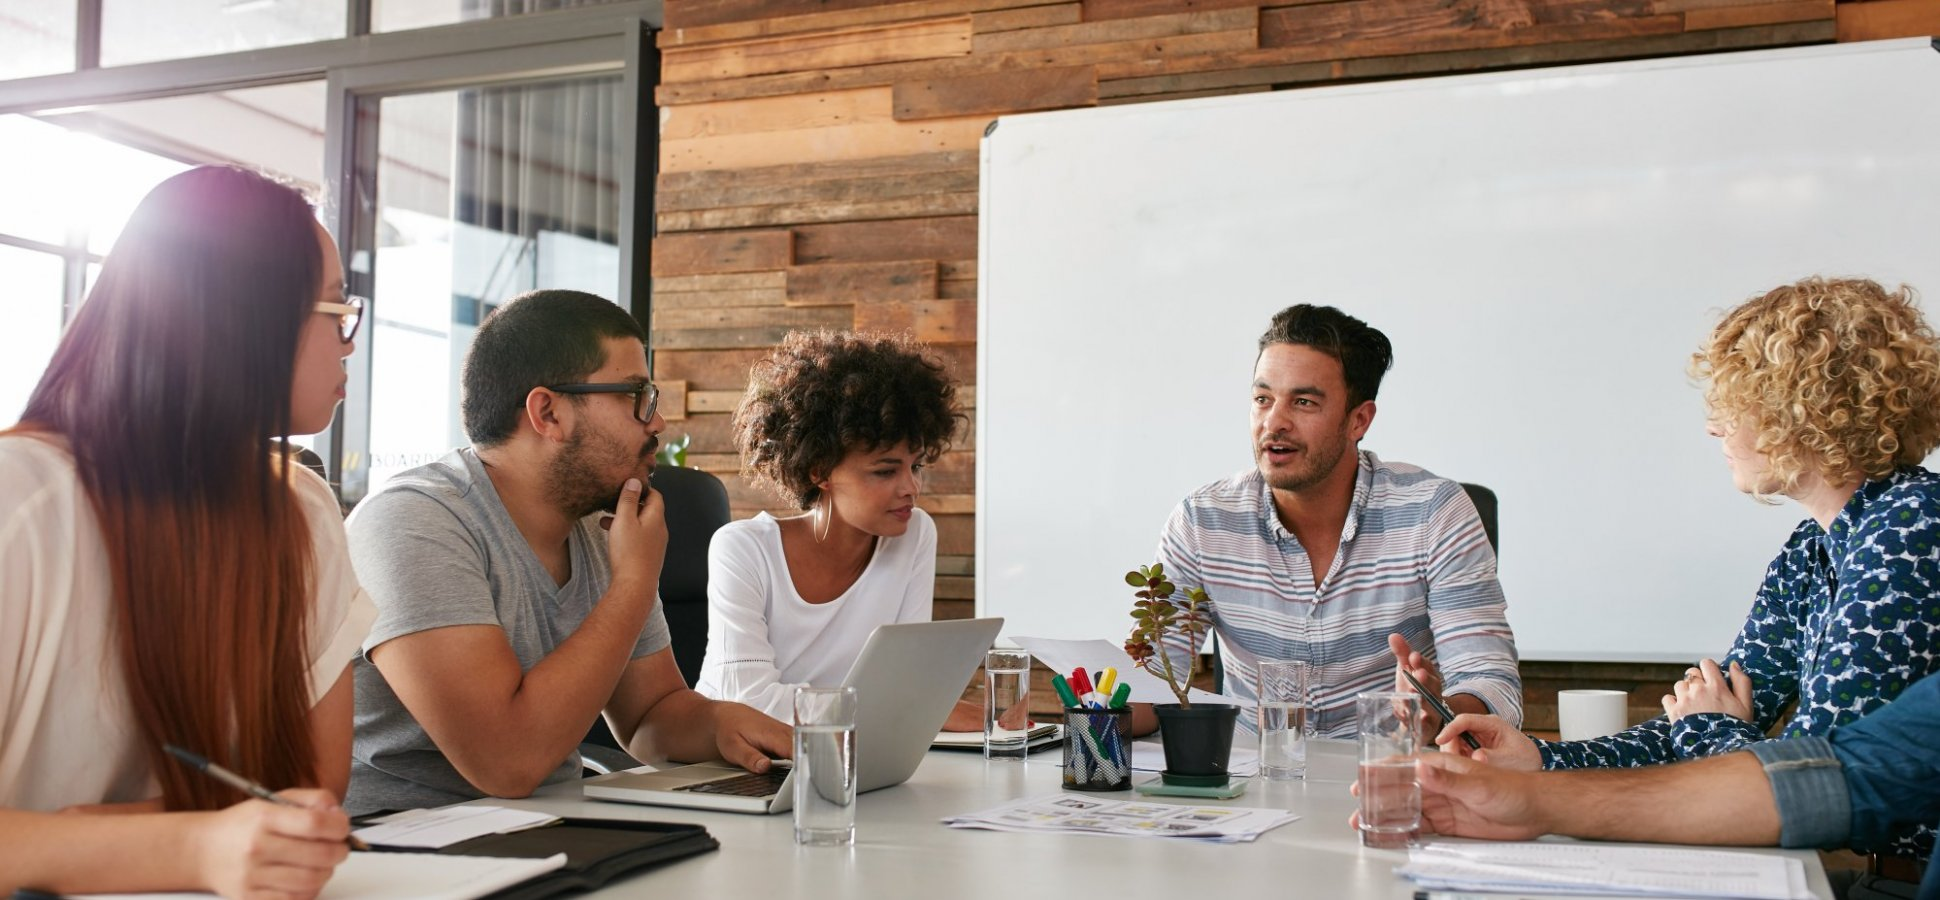 Do Employees Understand Your Business Strategy? Use This Surprising Method to Engage Your Team